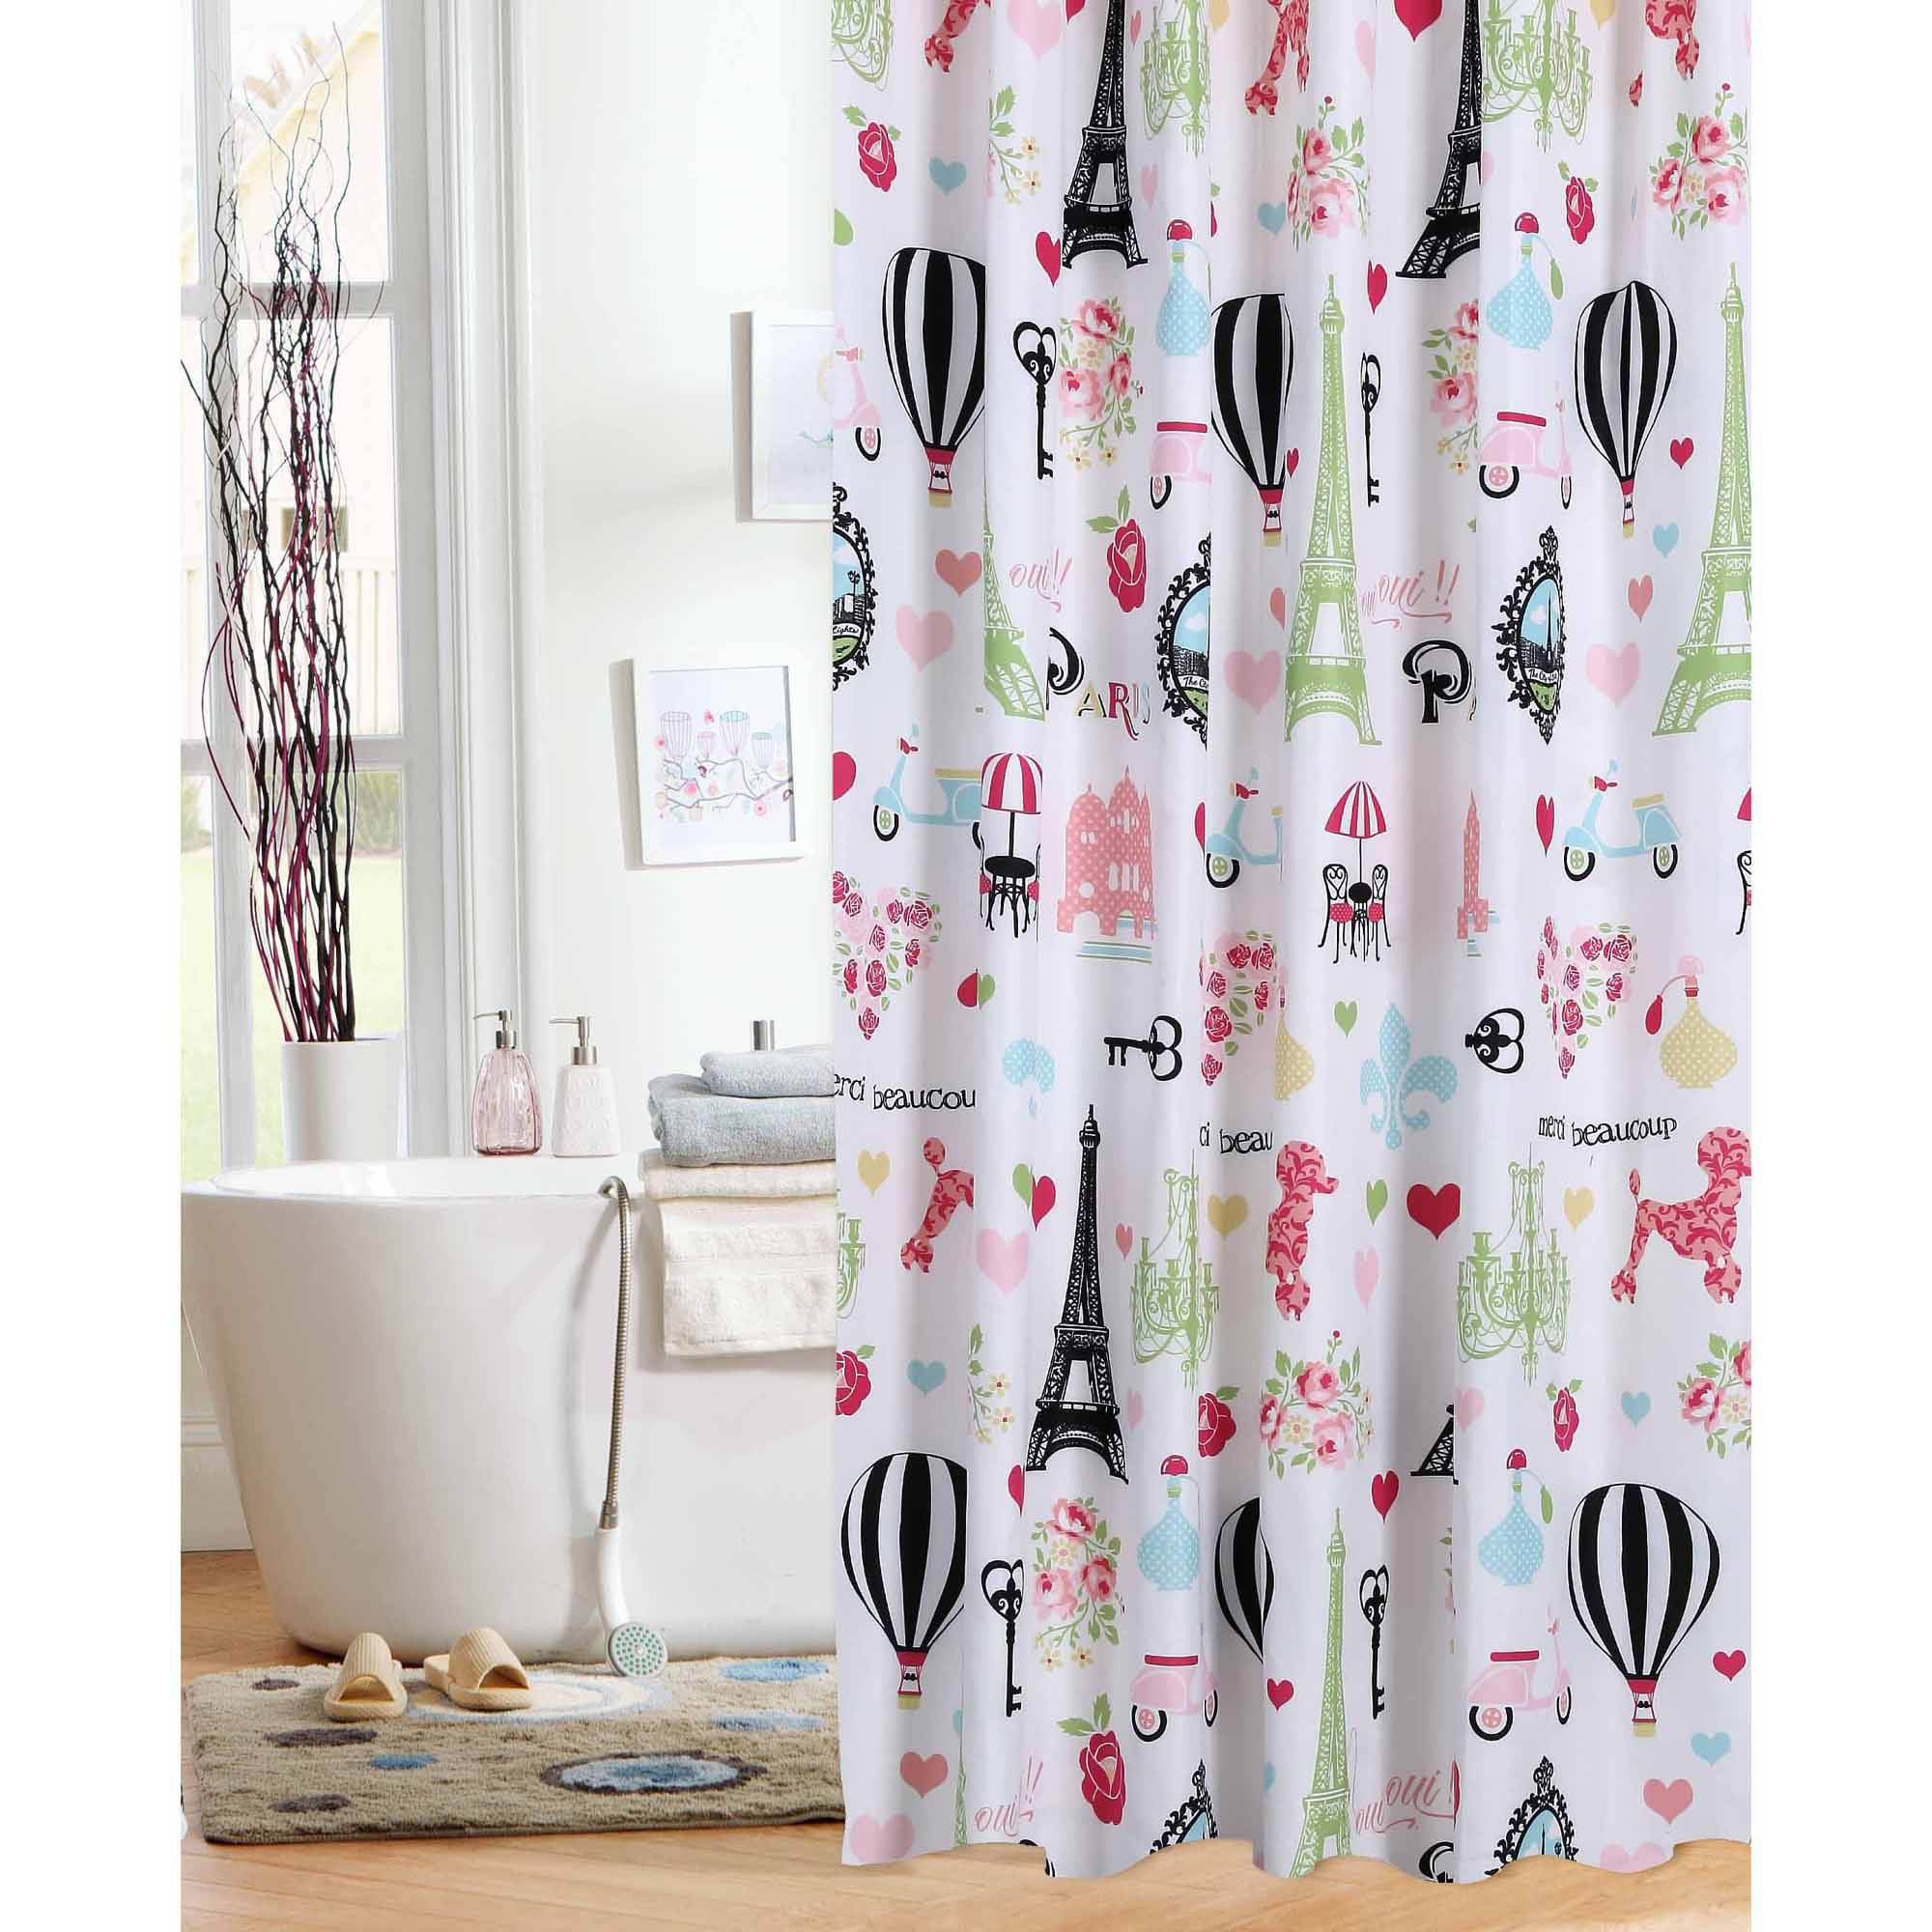 Bathroom Accessories For Children mainstays kids i love paris shower curtain - walmart